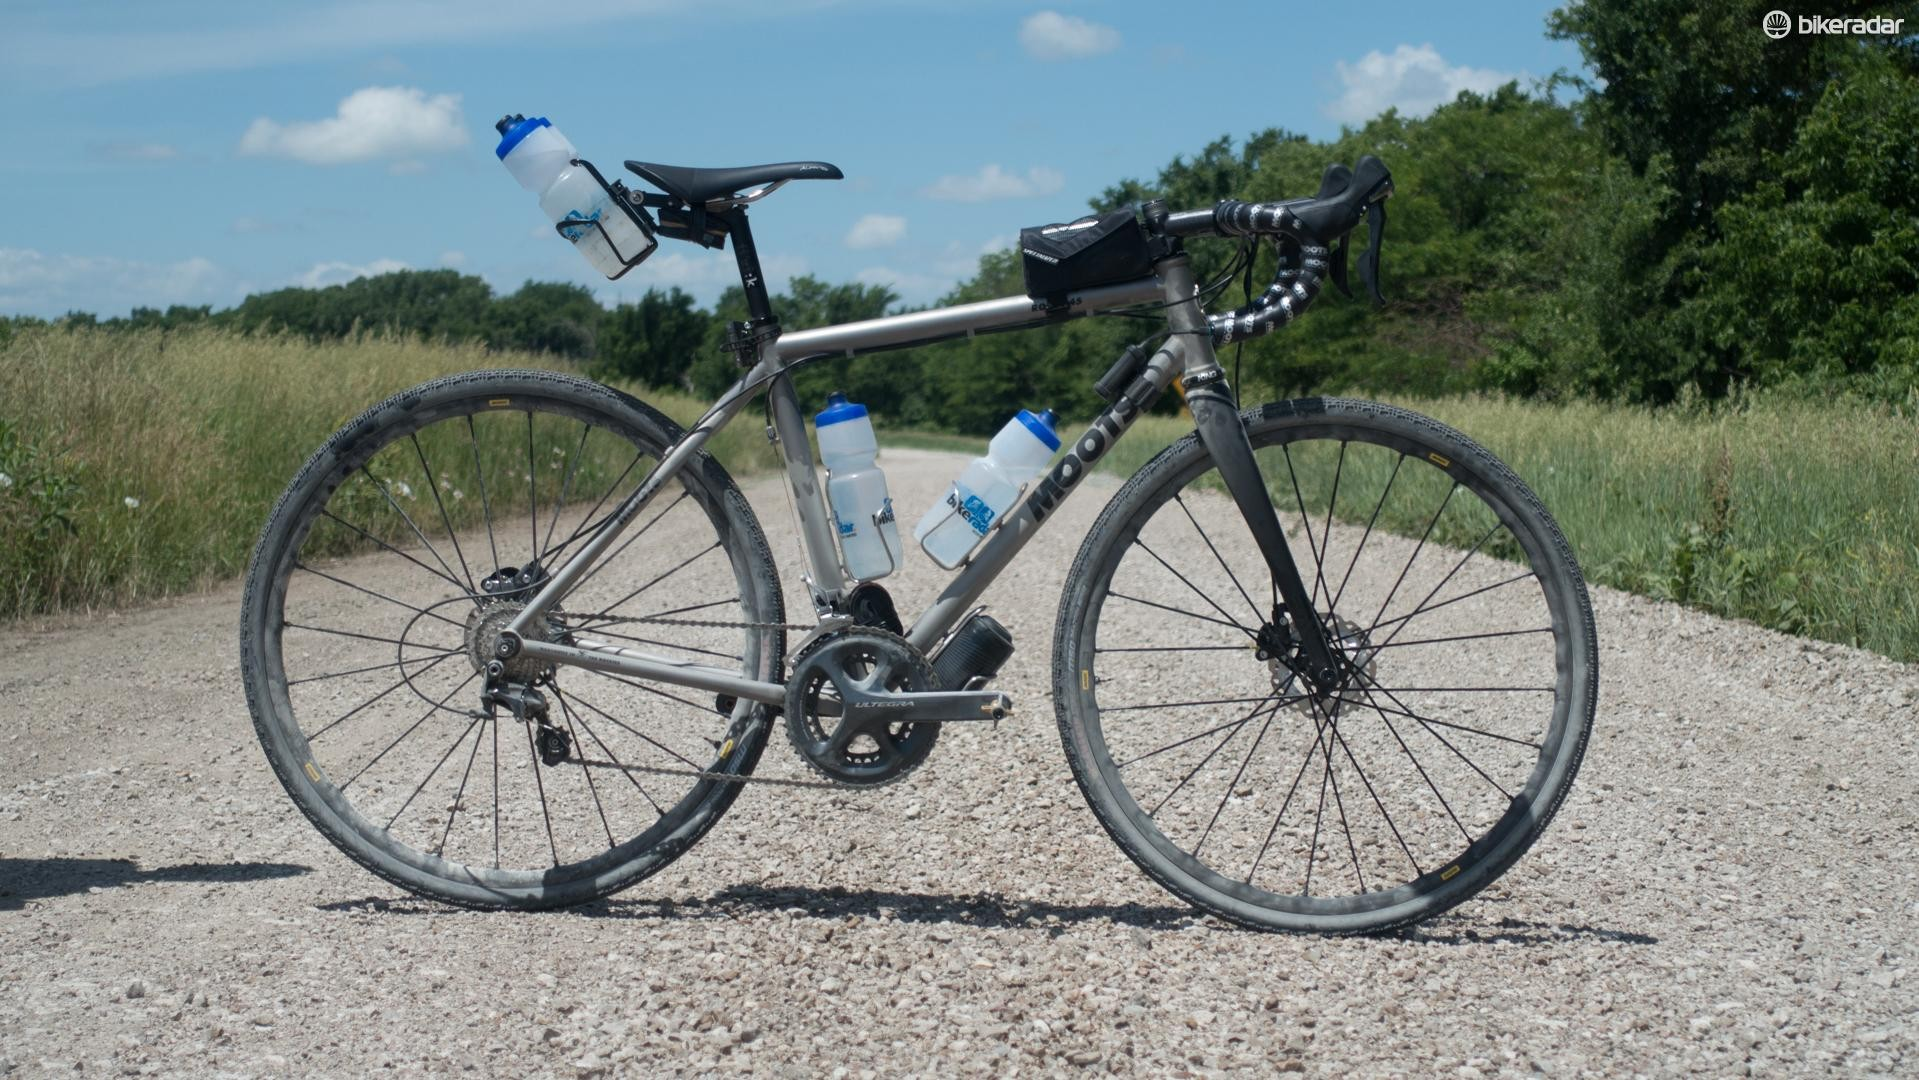 The before: Moots Routt 45 in race trim